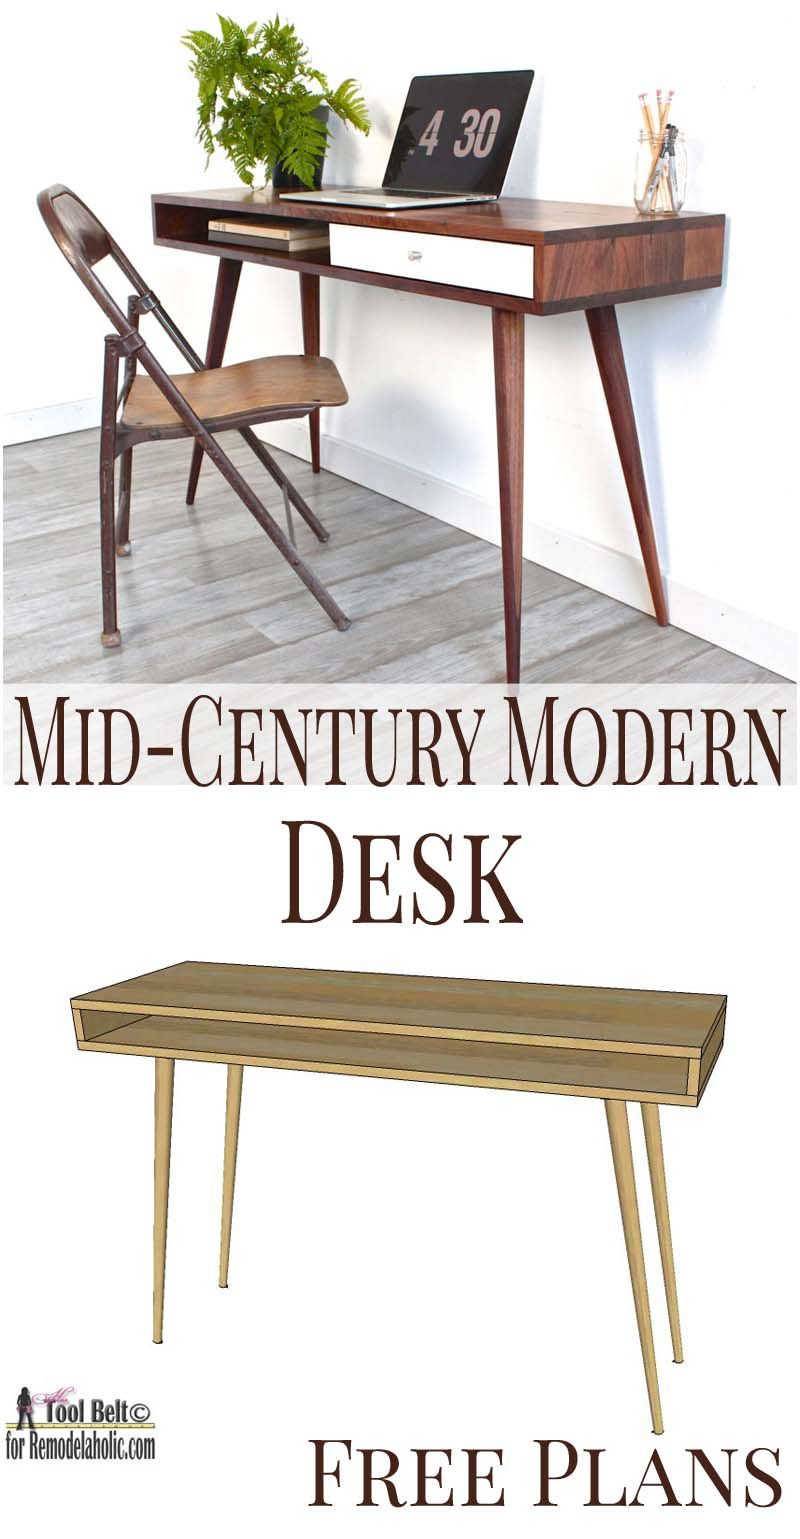 ^ 1000+ images about Mid-century Modern on Pinterest Modern desk ...